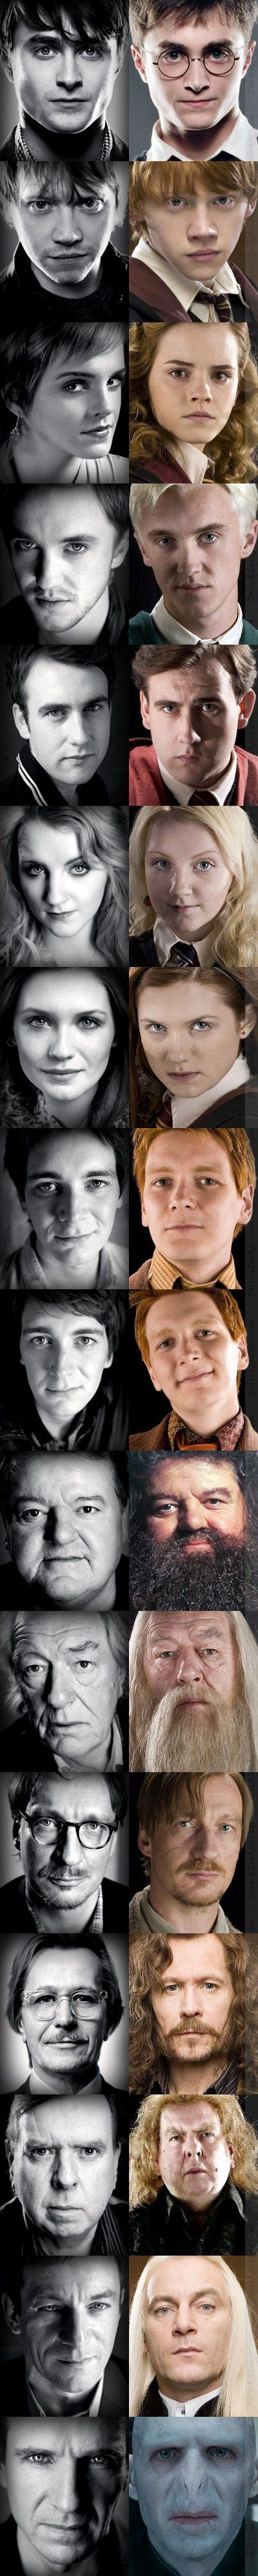 Harry Potter Characters in Real Life